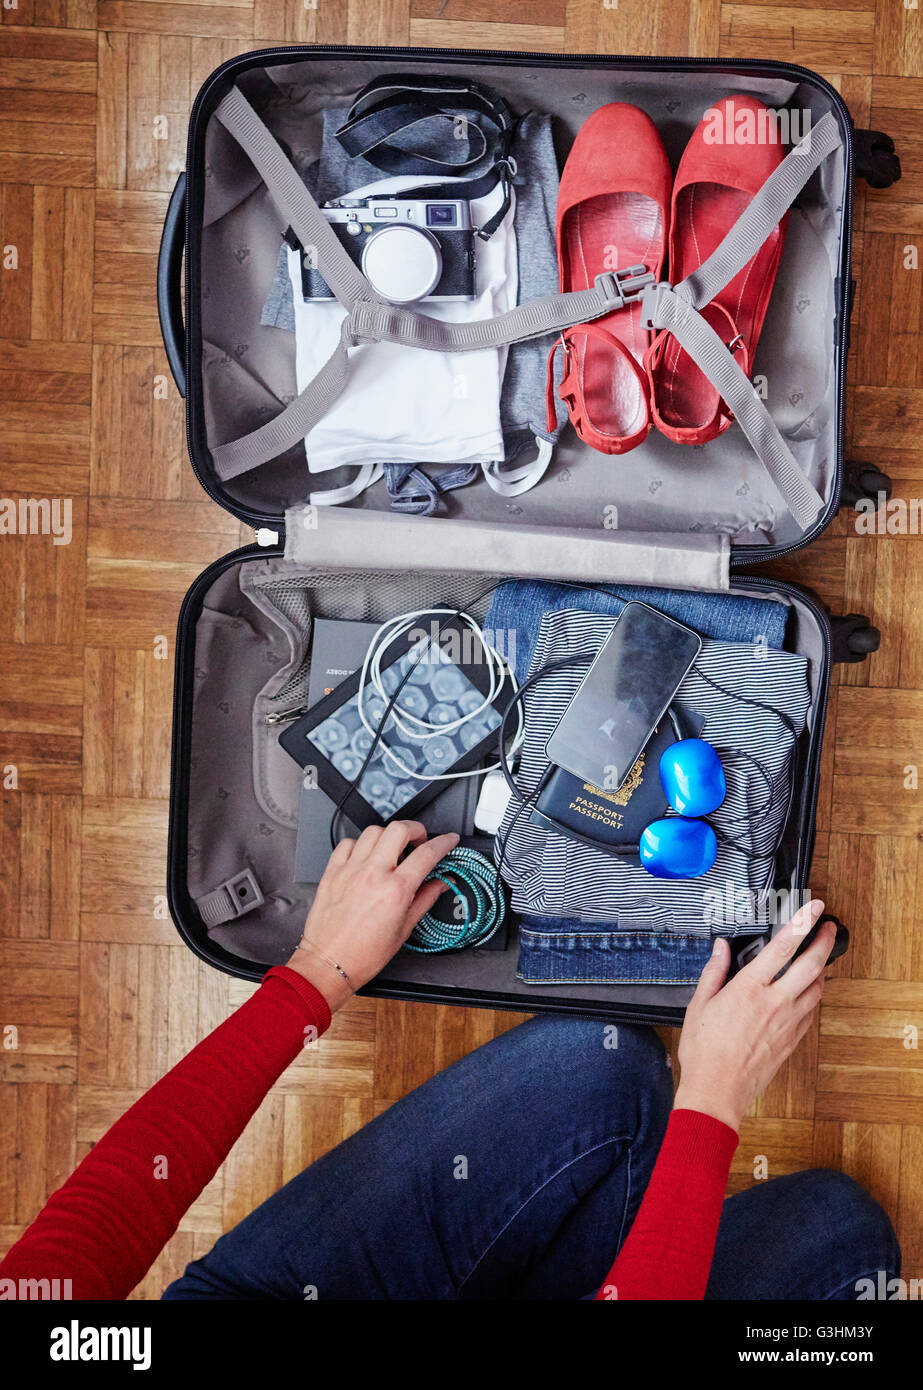 Woman packing suitcase, overhead view Stock Photo